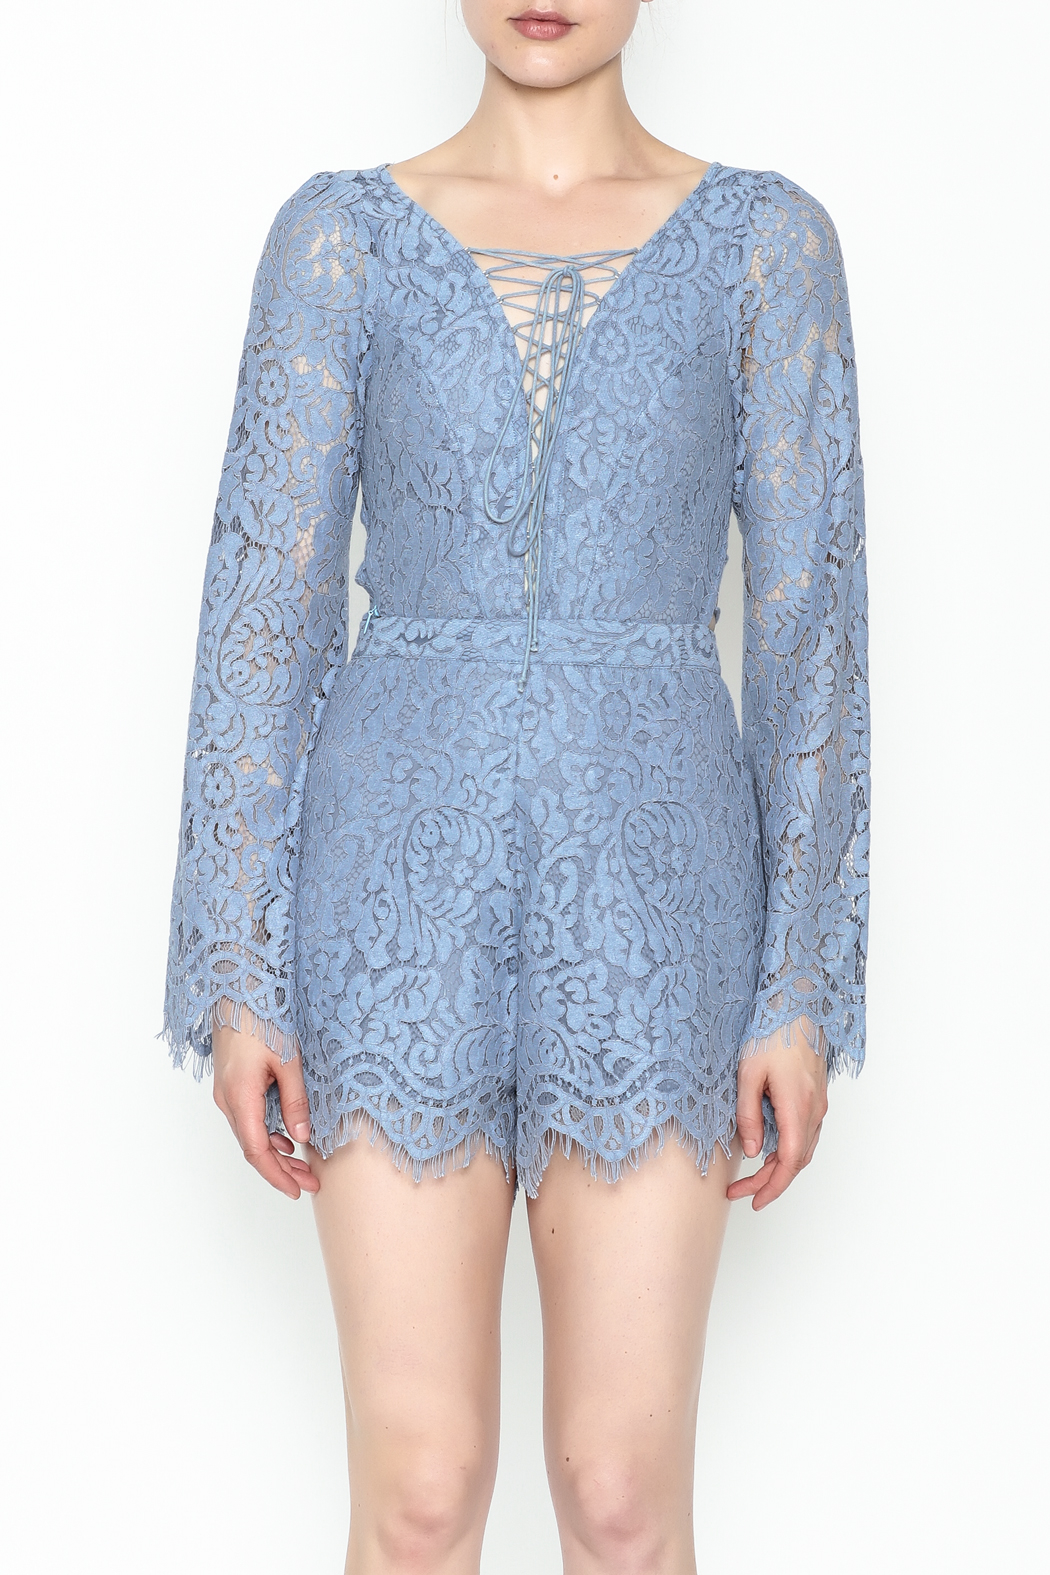 Surf Gypsy Romatic Lace Romper - Front Full Image